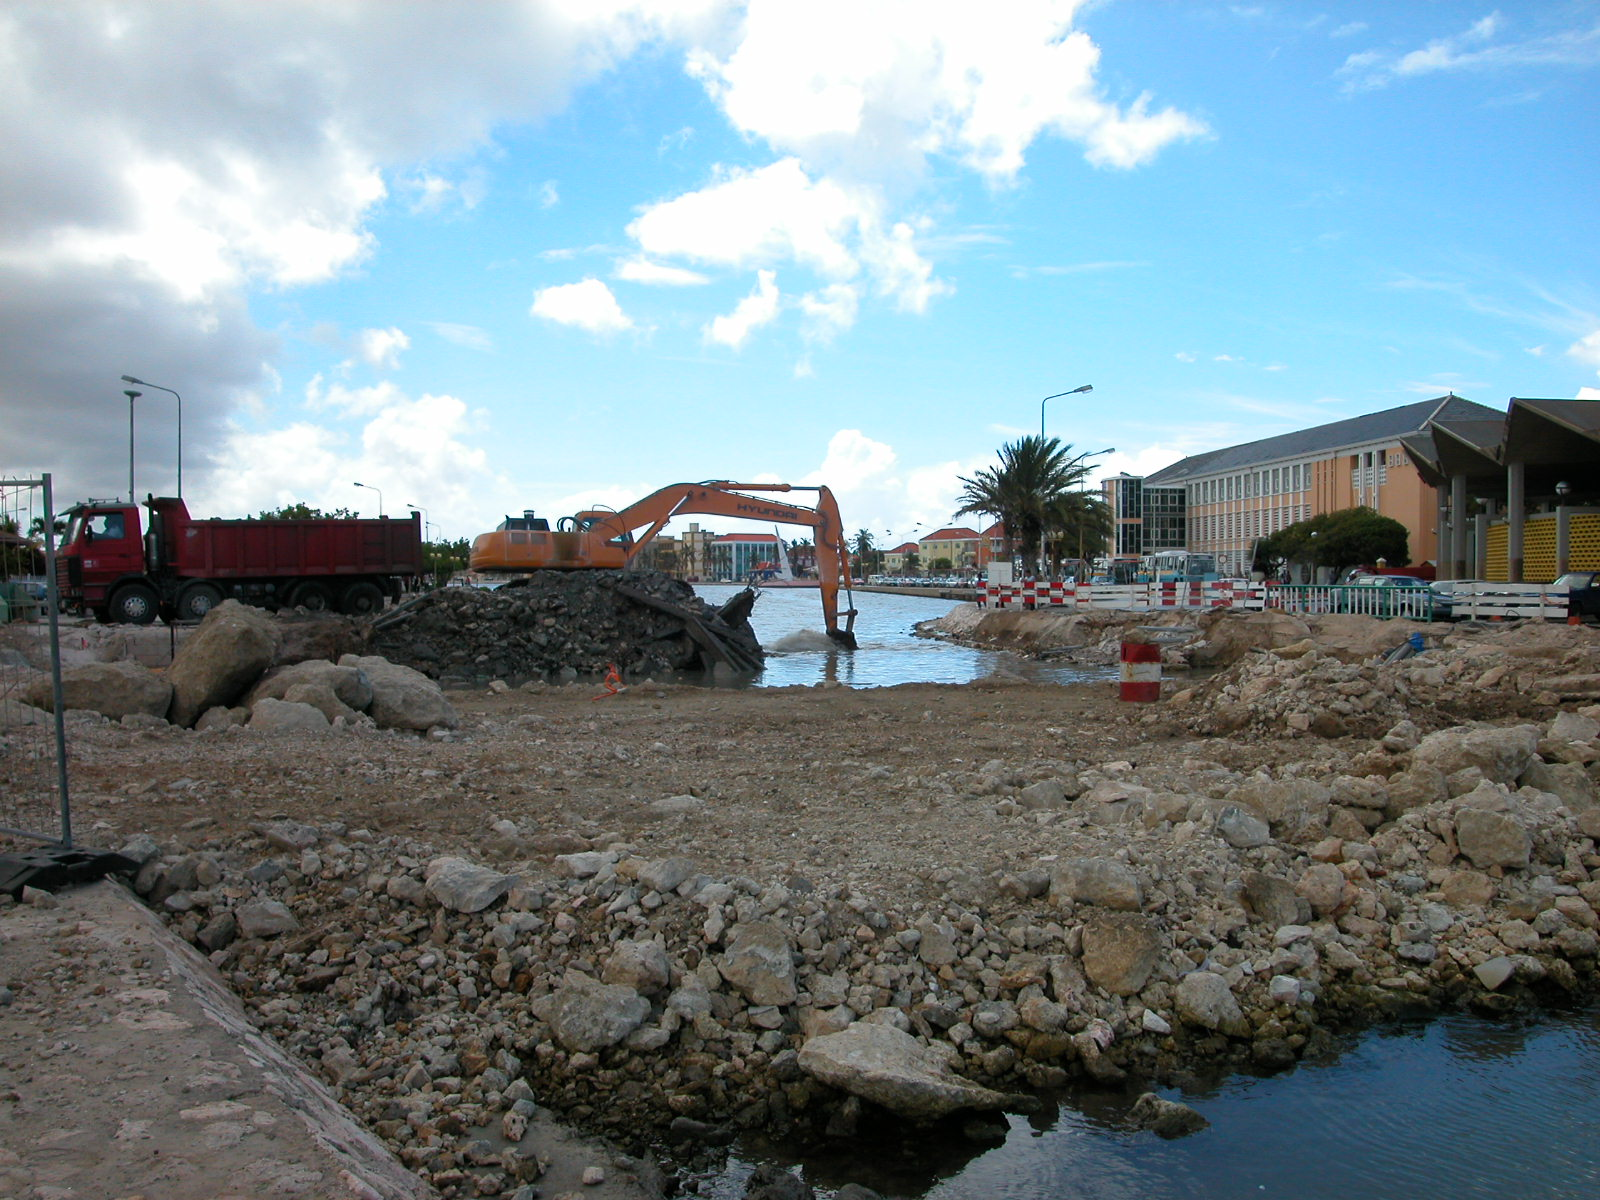 jacco port harbor harbour truck crane dig digging construction site rubble